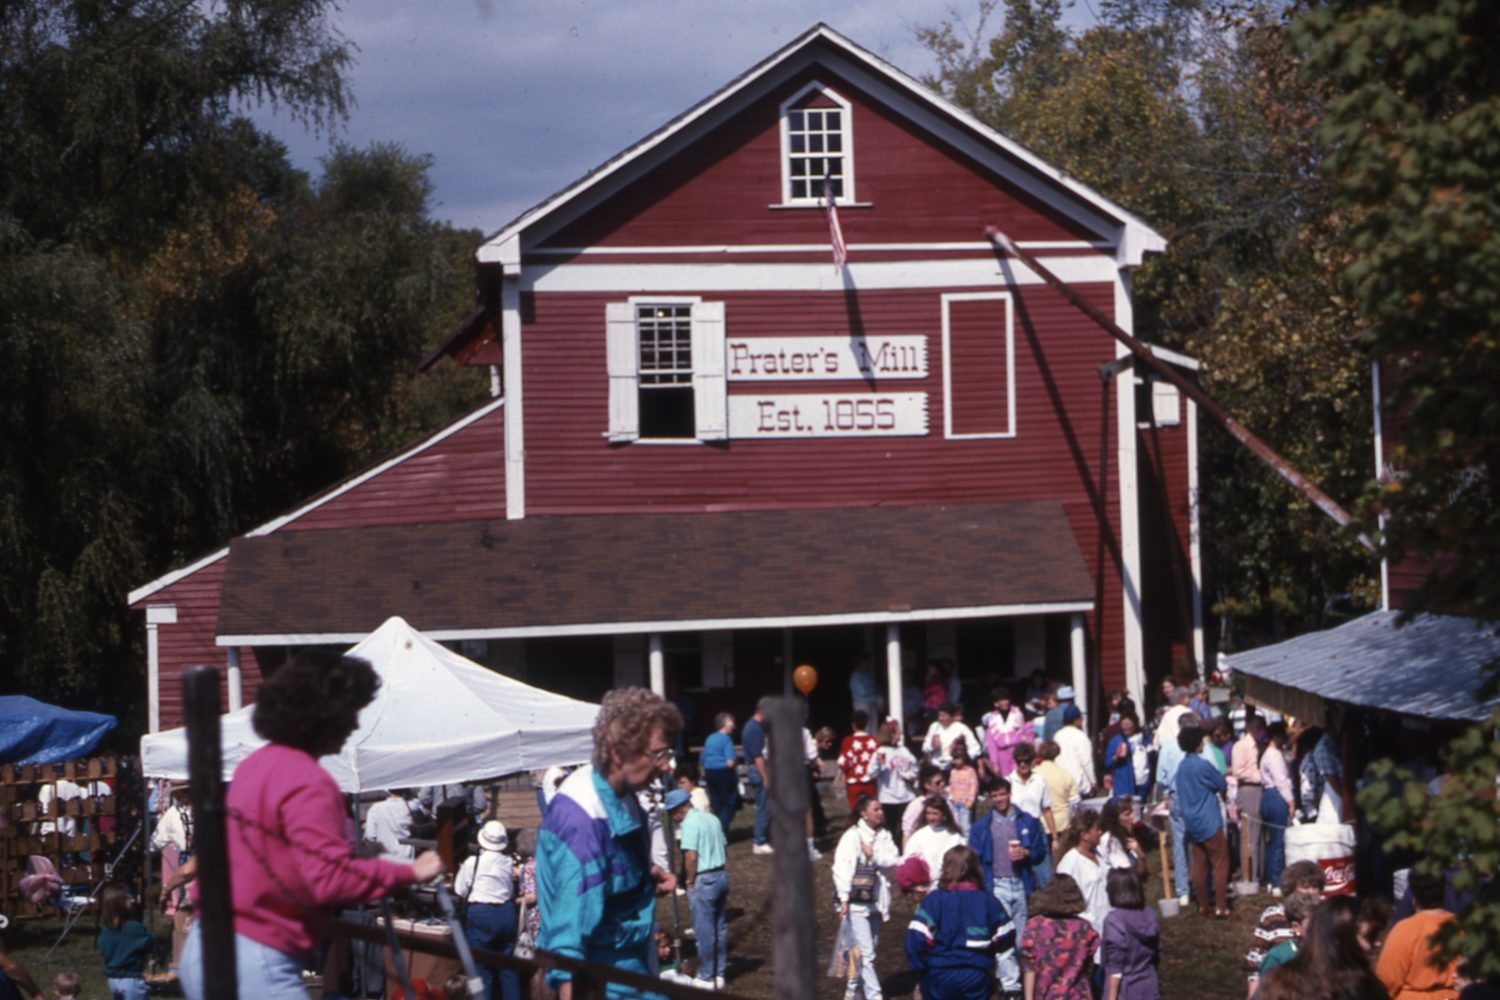 Forty-five years later, the Prater's Mill Country Fair continues and serves as the centerpiece of the Prater's Mill Heritage Park, now owned by the people of Whitfield County